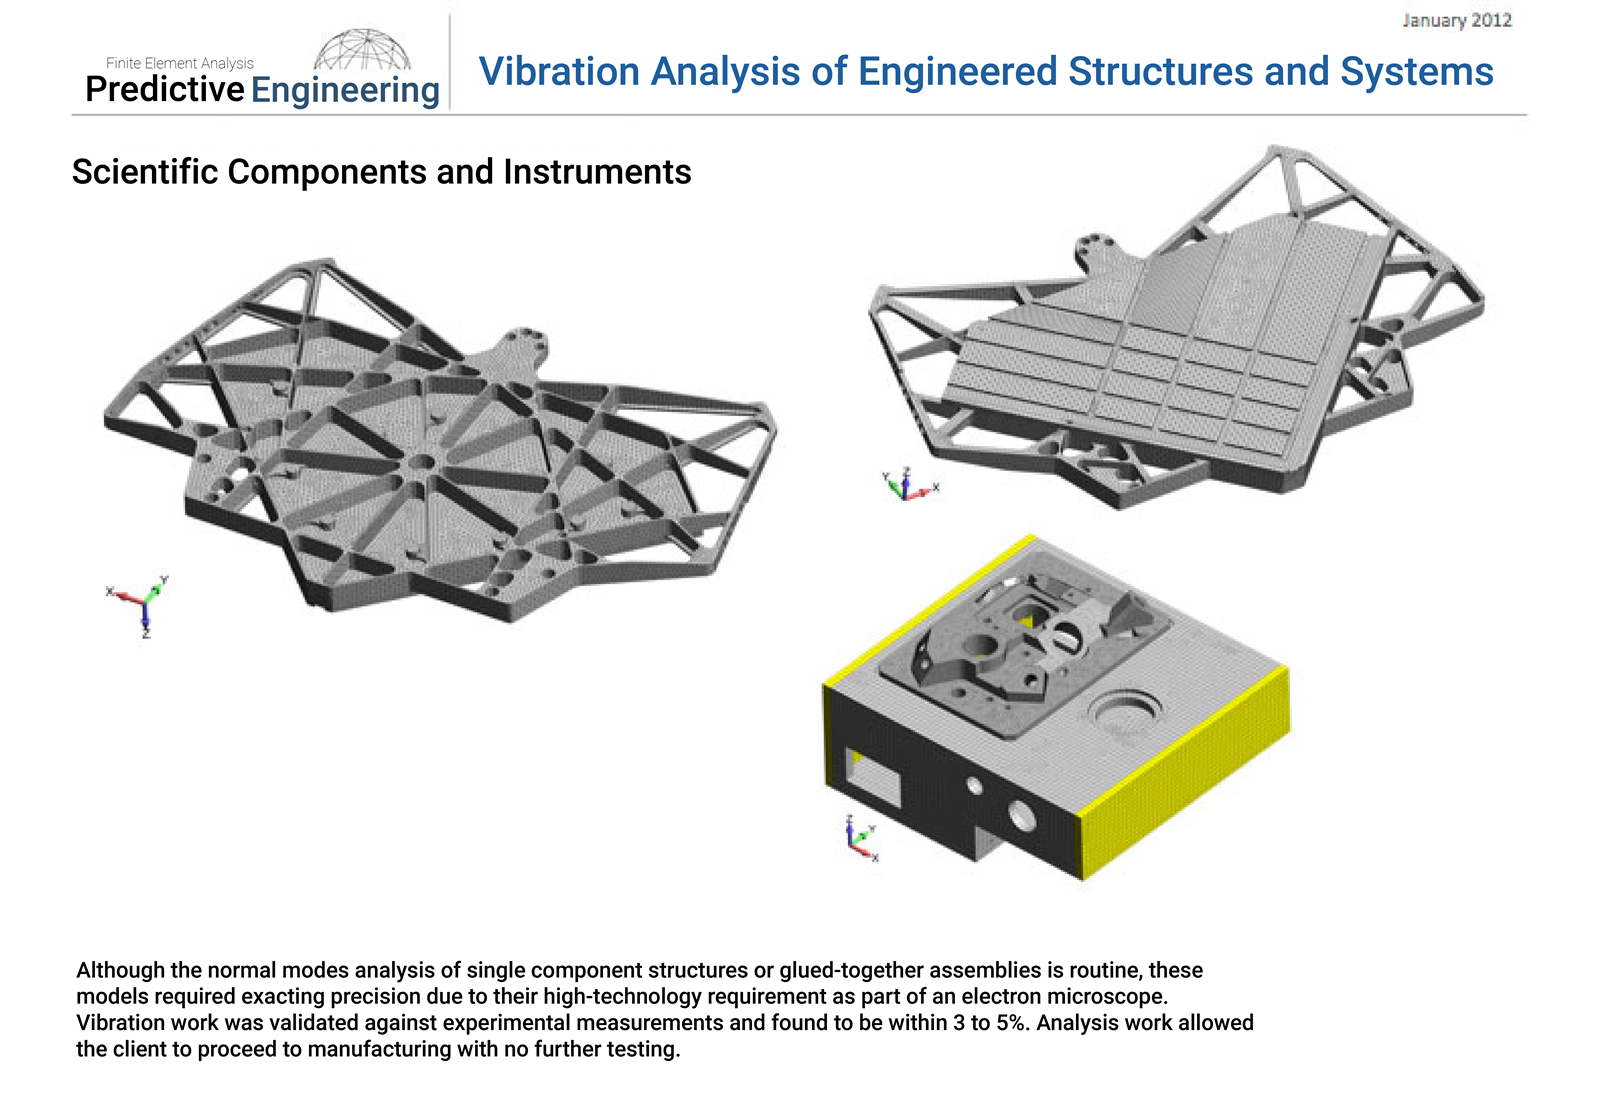 Normal modes analysis using Femap and NX Nastran for a variety of electron microscope platens and holders